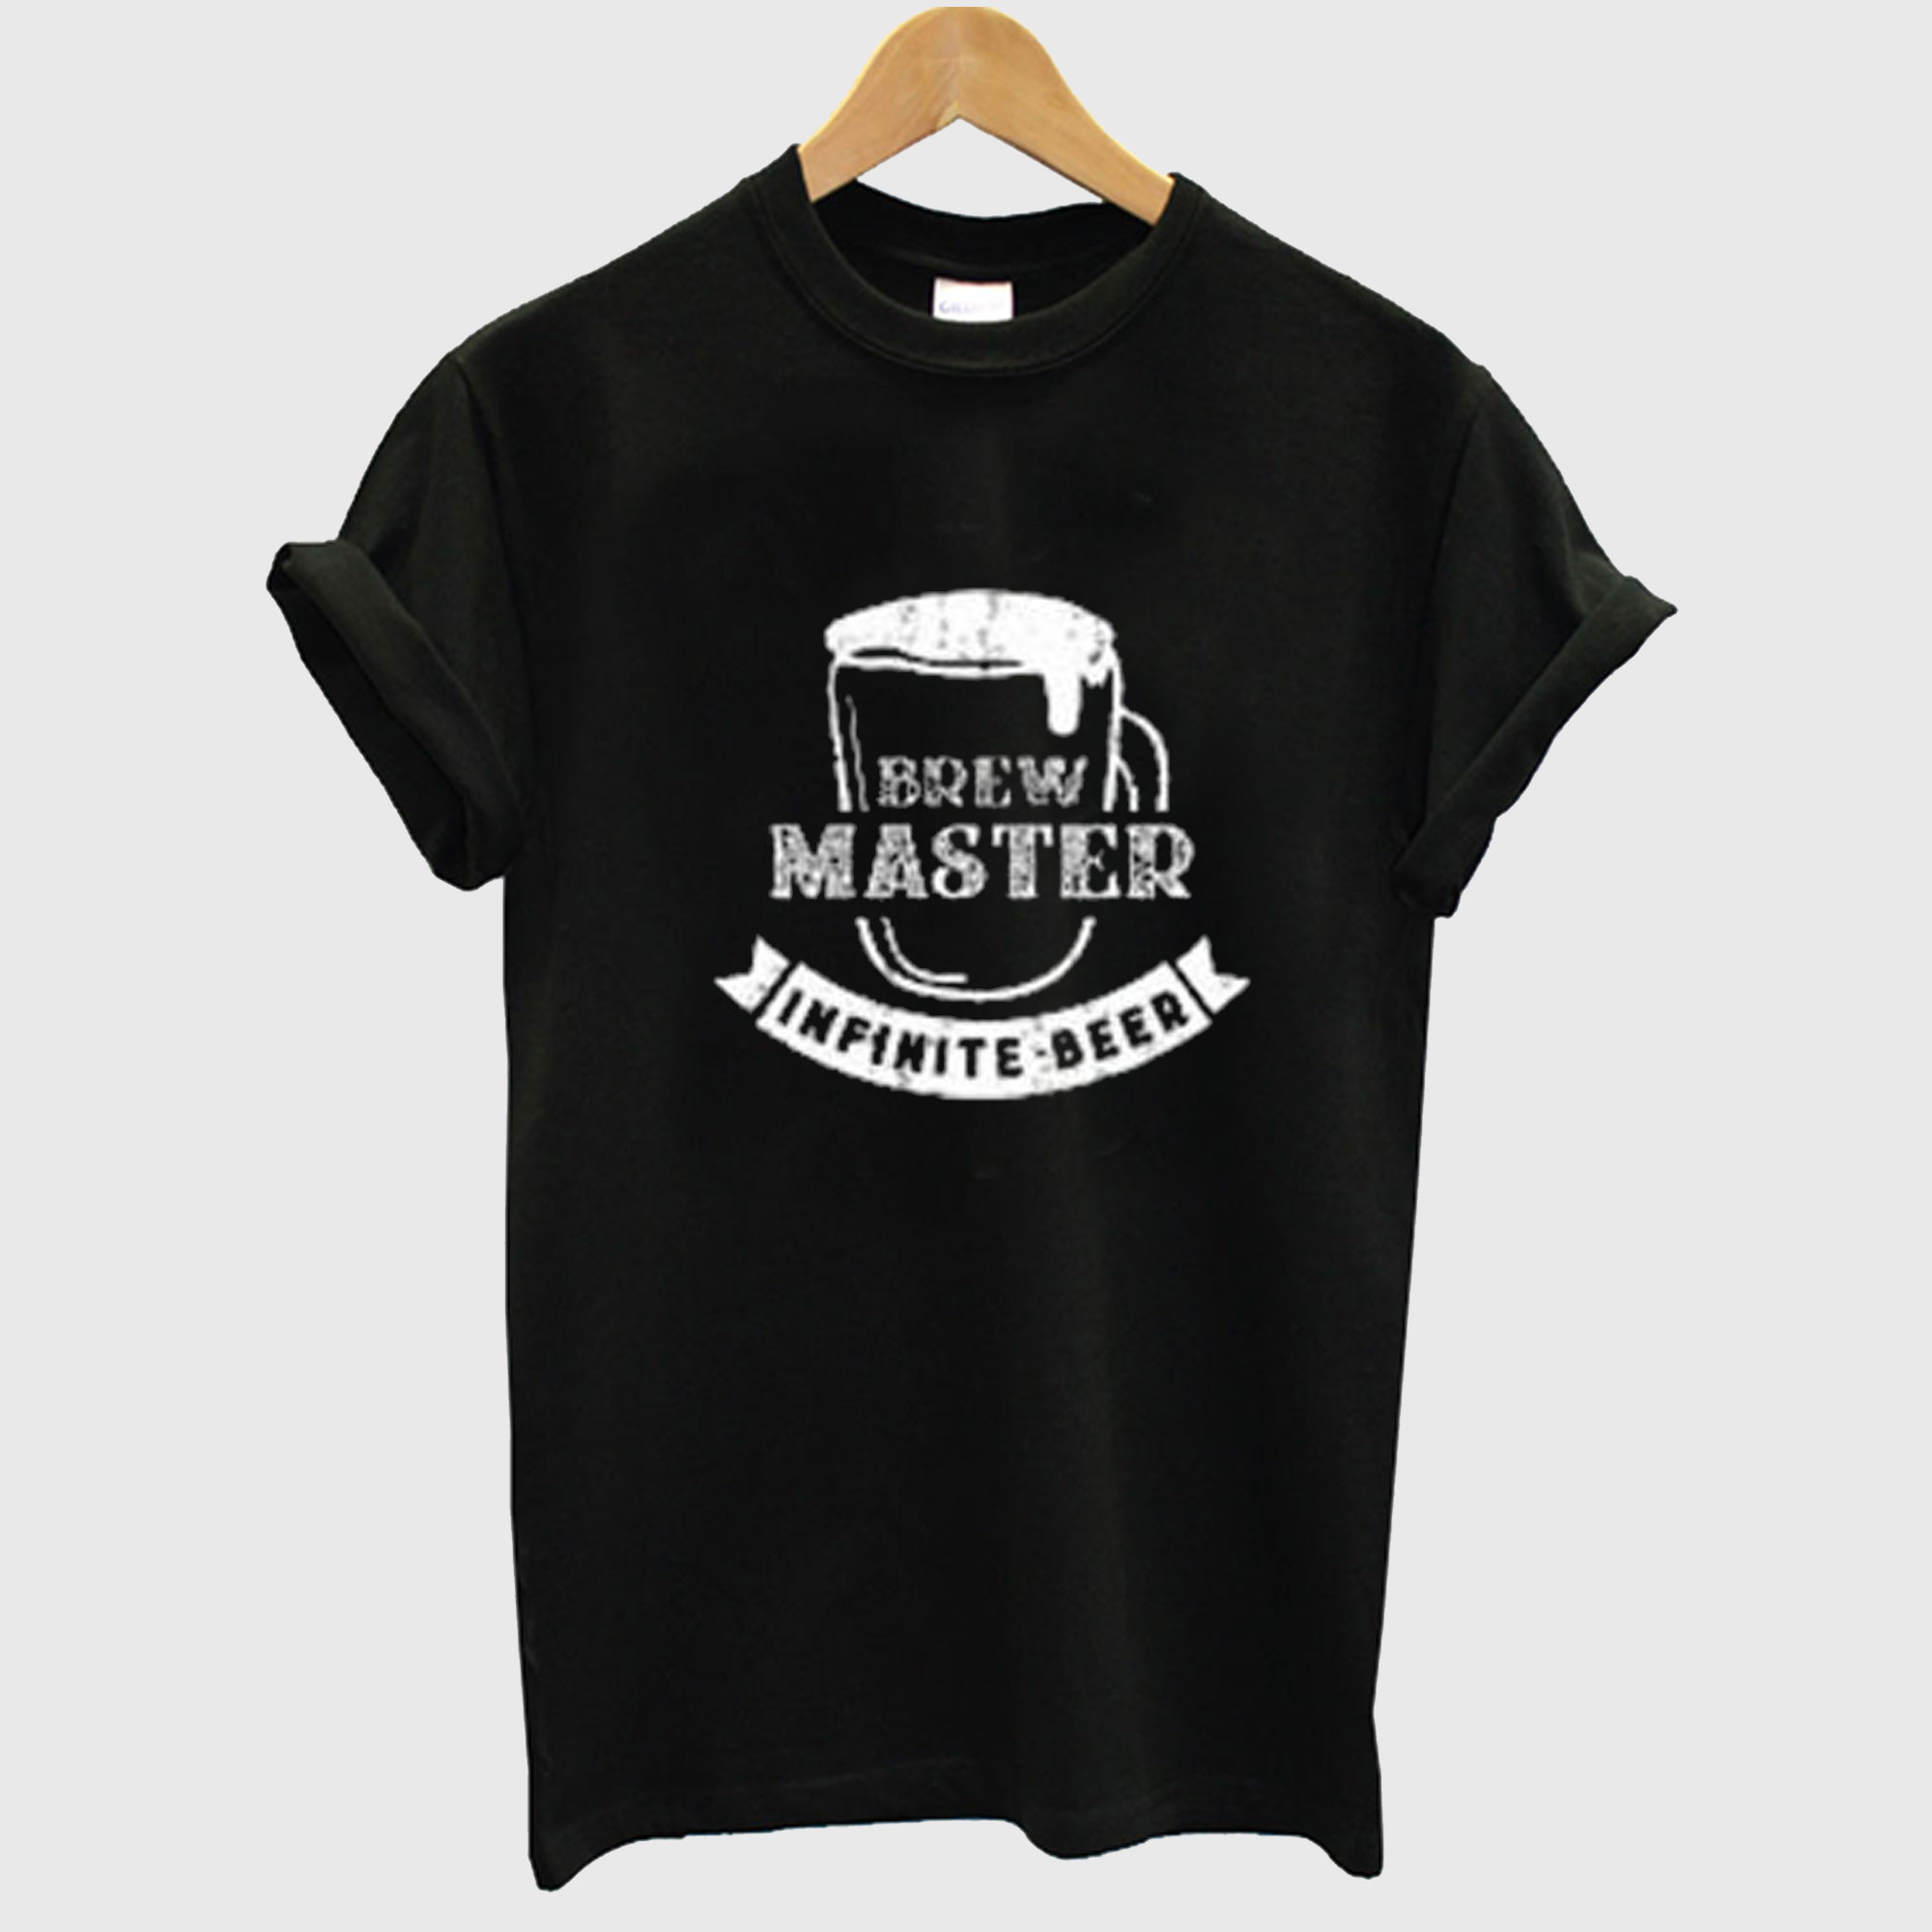 Brew Master Infinite Beer T Shirt